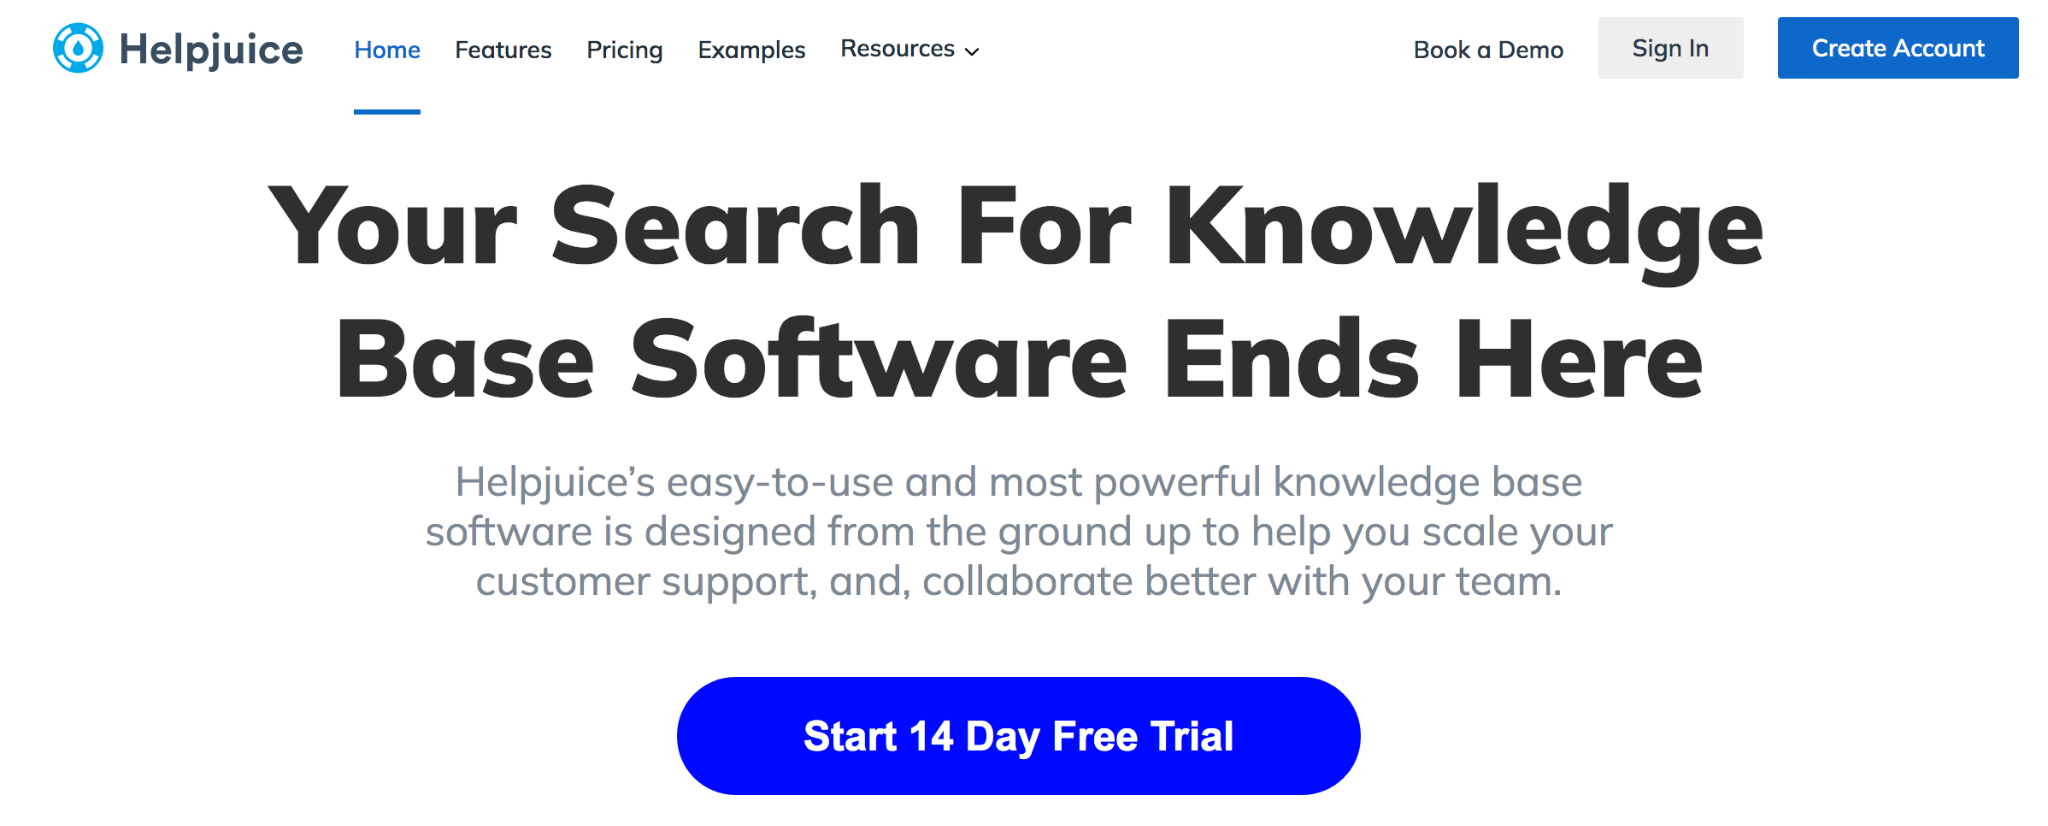 Helpjuice homepage: Your Search for Knowledge Base Software Ends Here